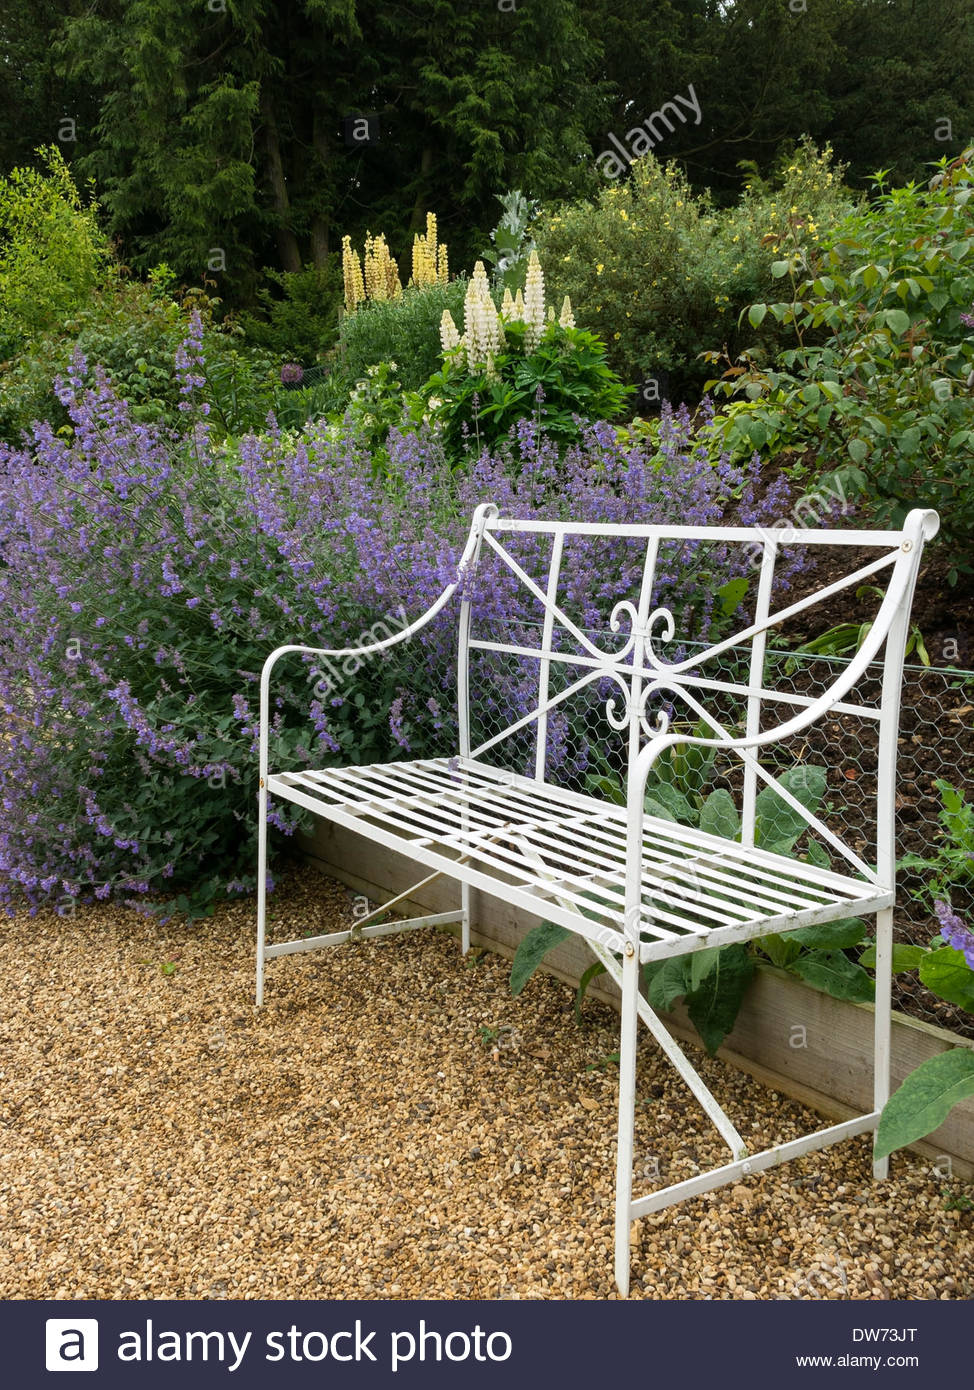 Pleasing Ornate White Metal Bench Seat In Front Of Flower Bed Border Theyellowbook Wood Chair Design Ideas Theyellowbookinfo